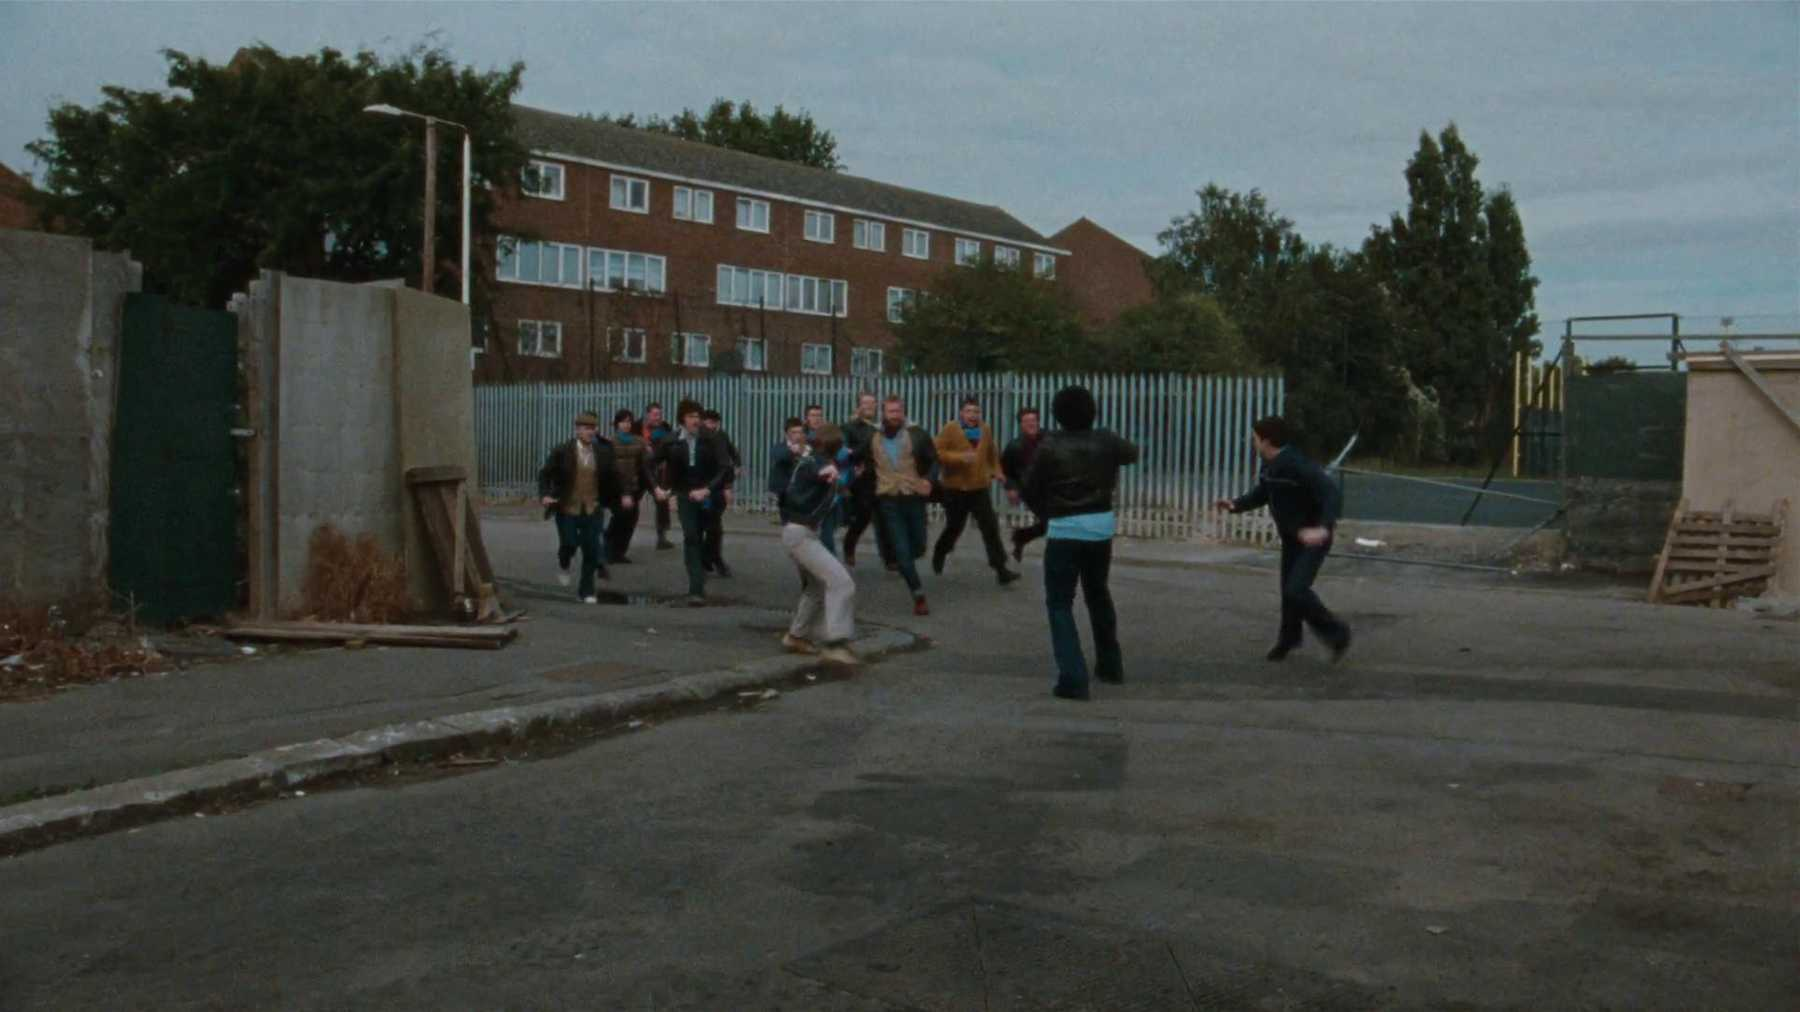 A street fight in British movie Cass